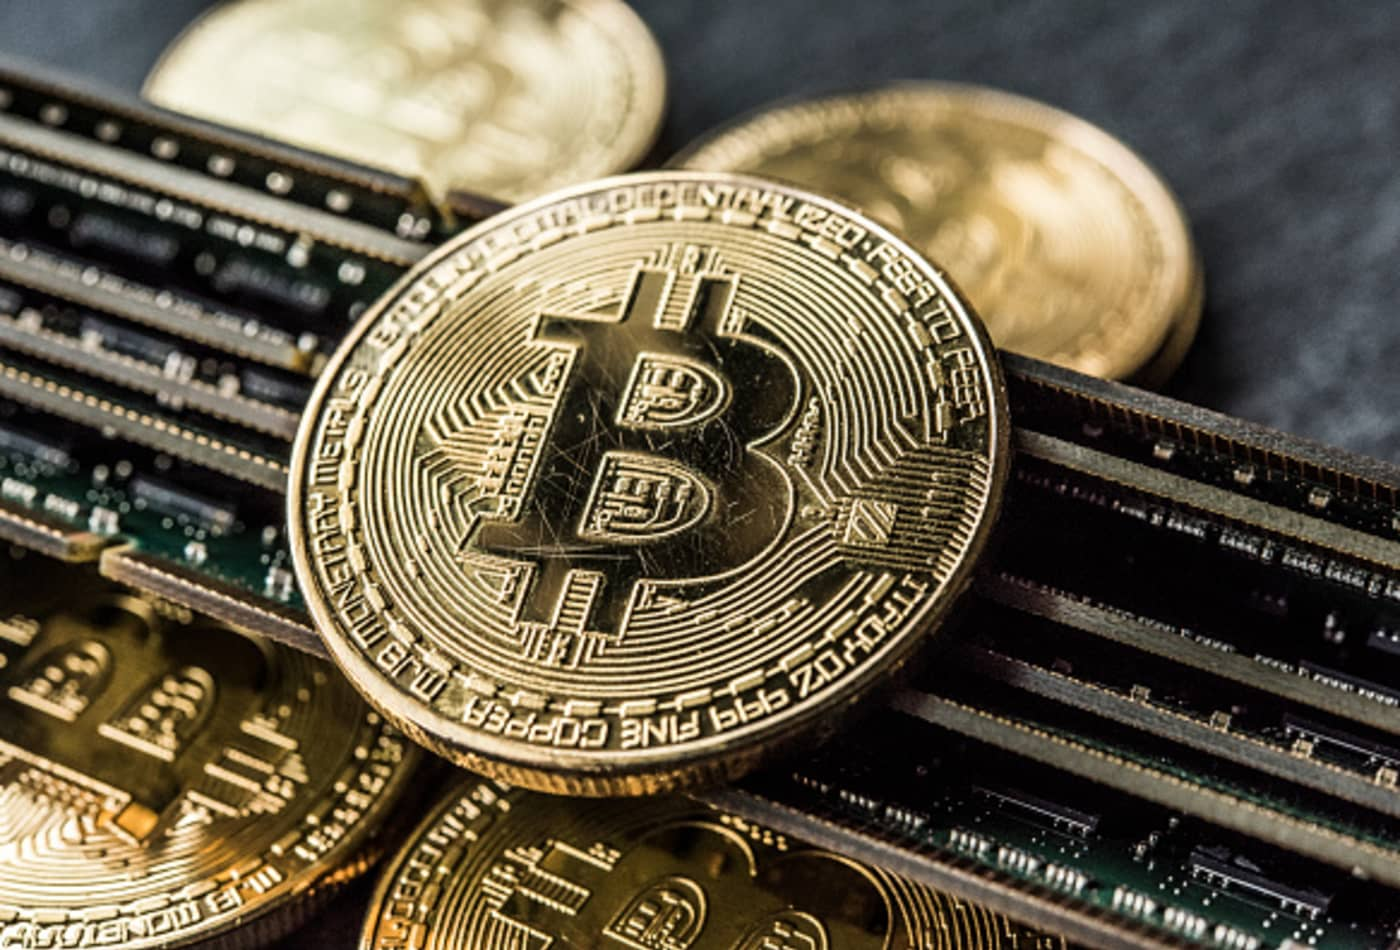 Bitcoin is breaking records because bigger investors are buying it now, says PwC